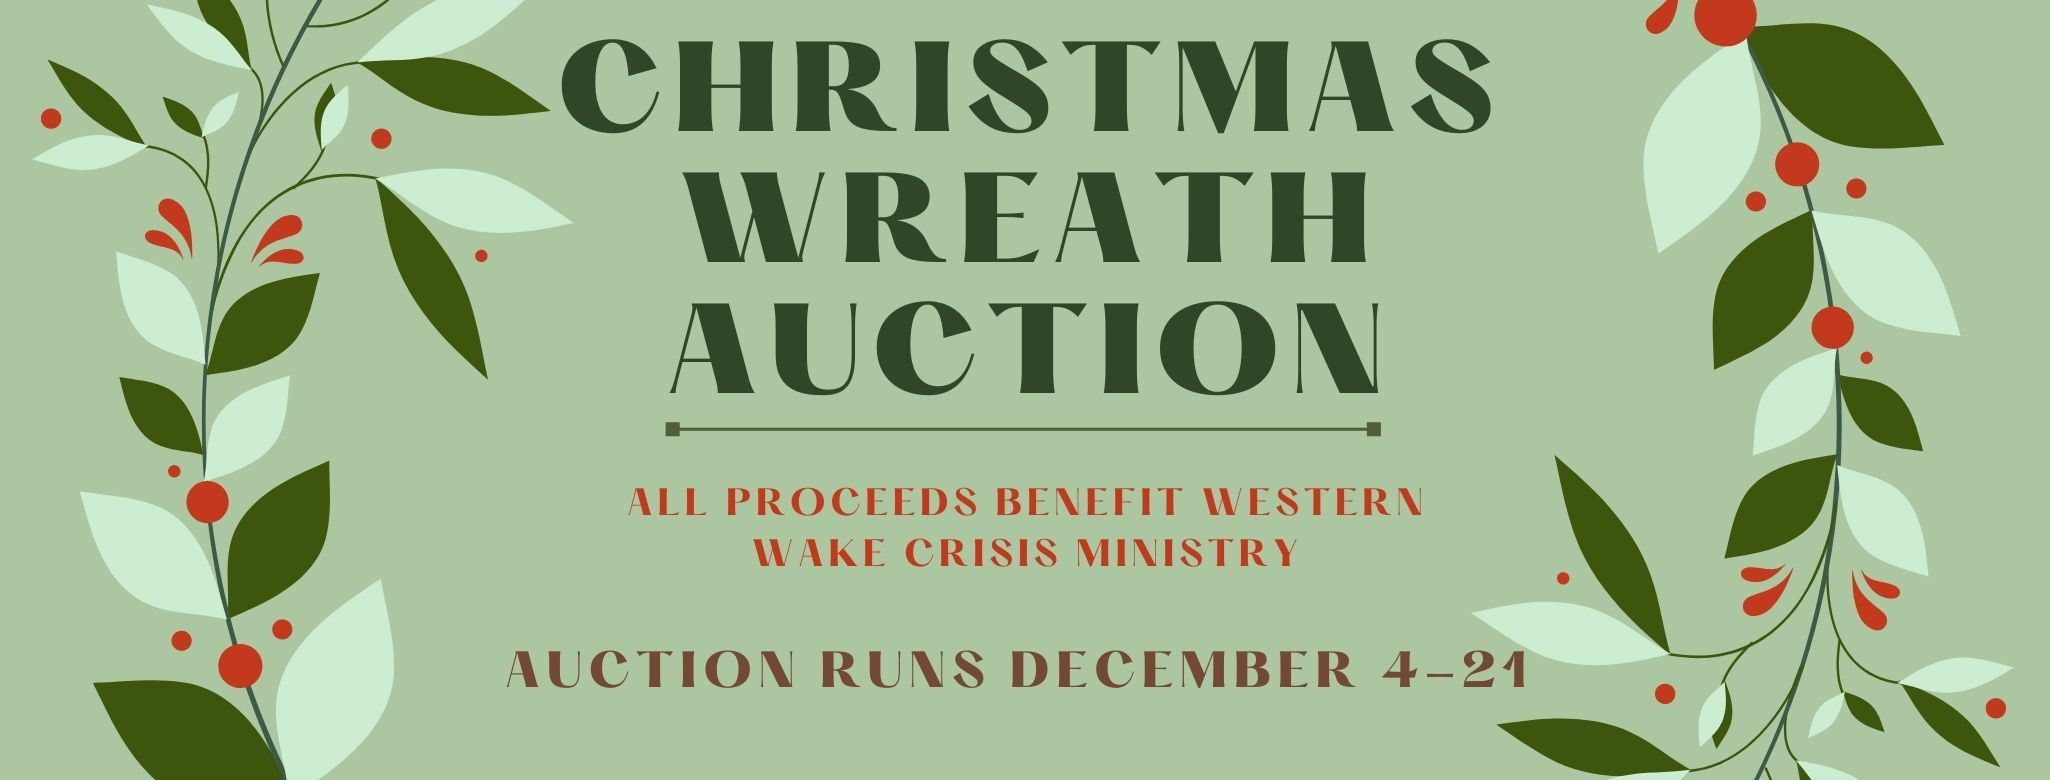 2020 Christmas Wreath Auction FB